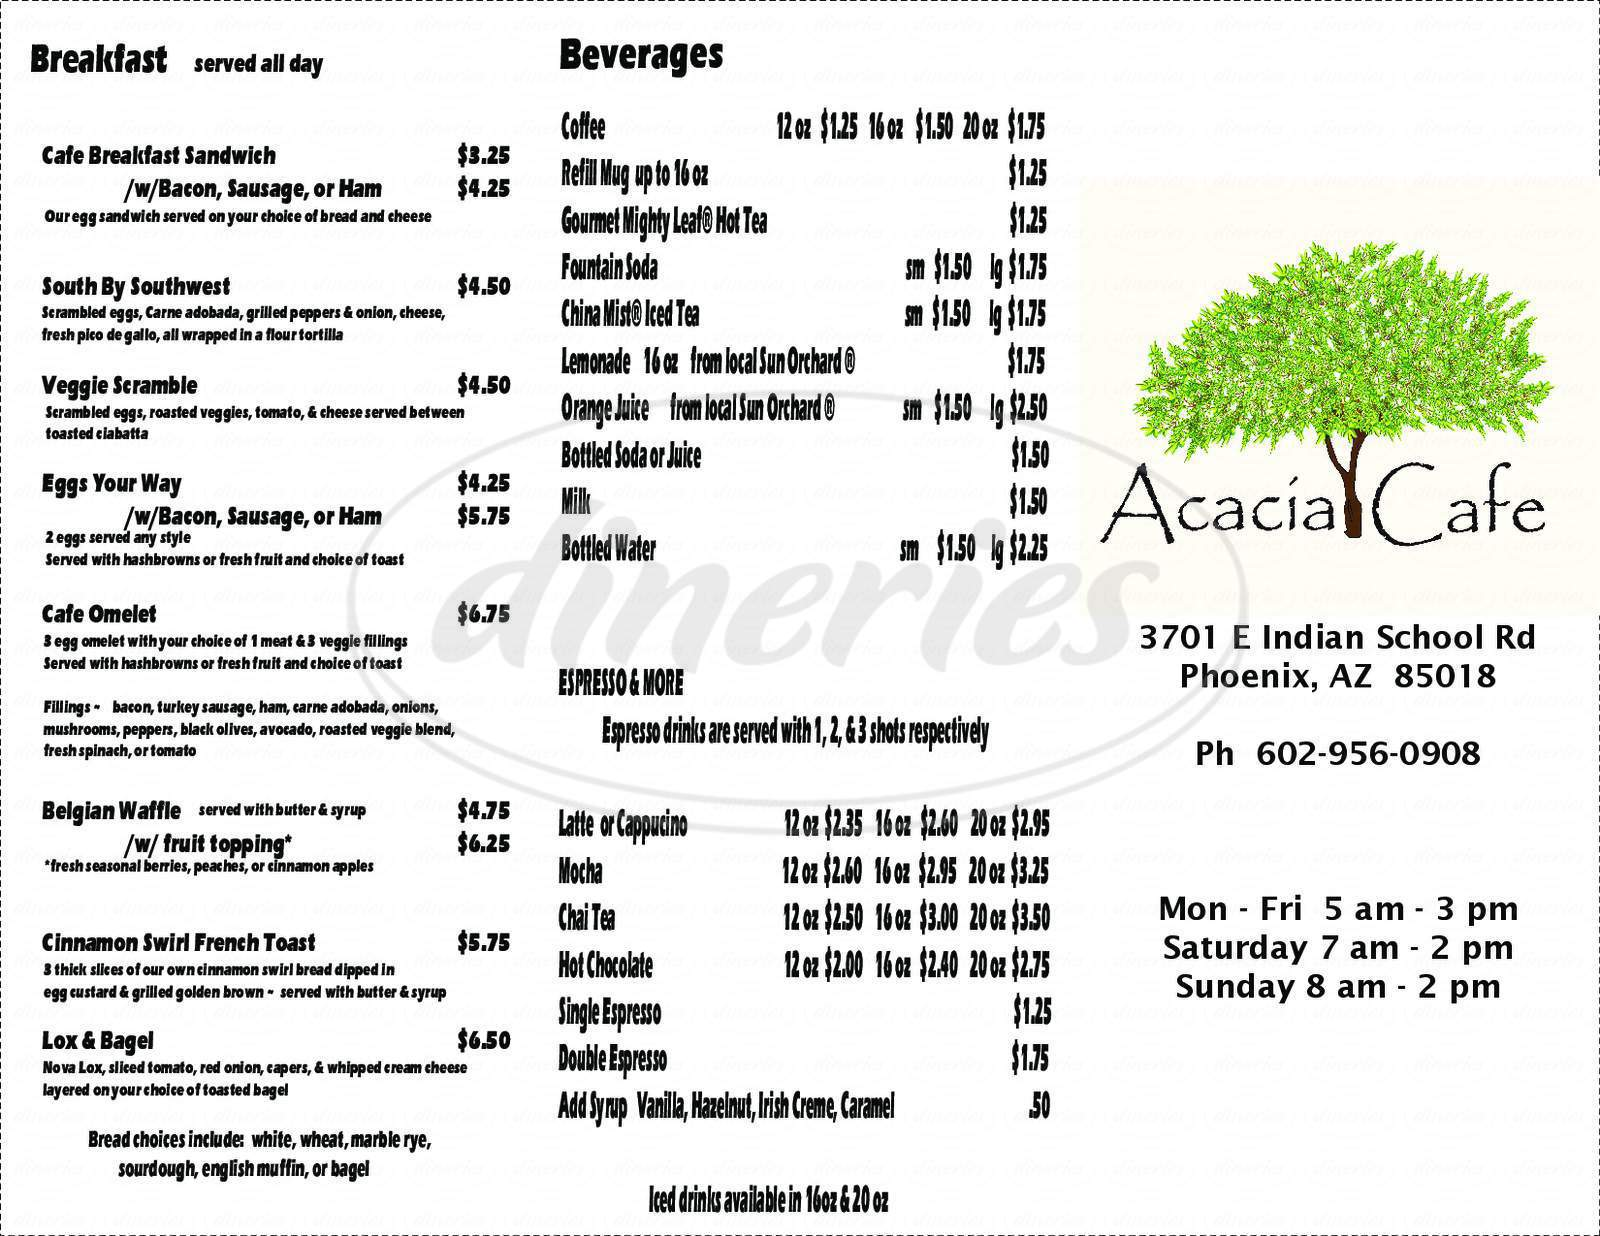 menu for Acacia Cafe